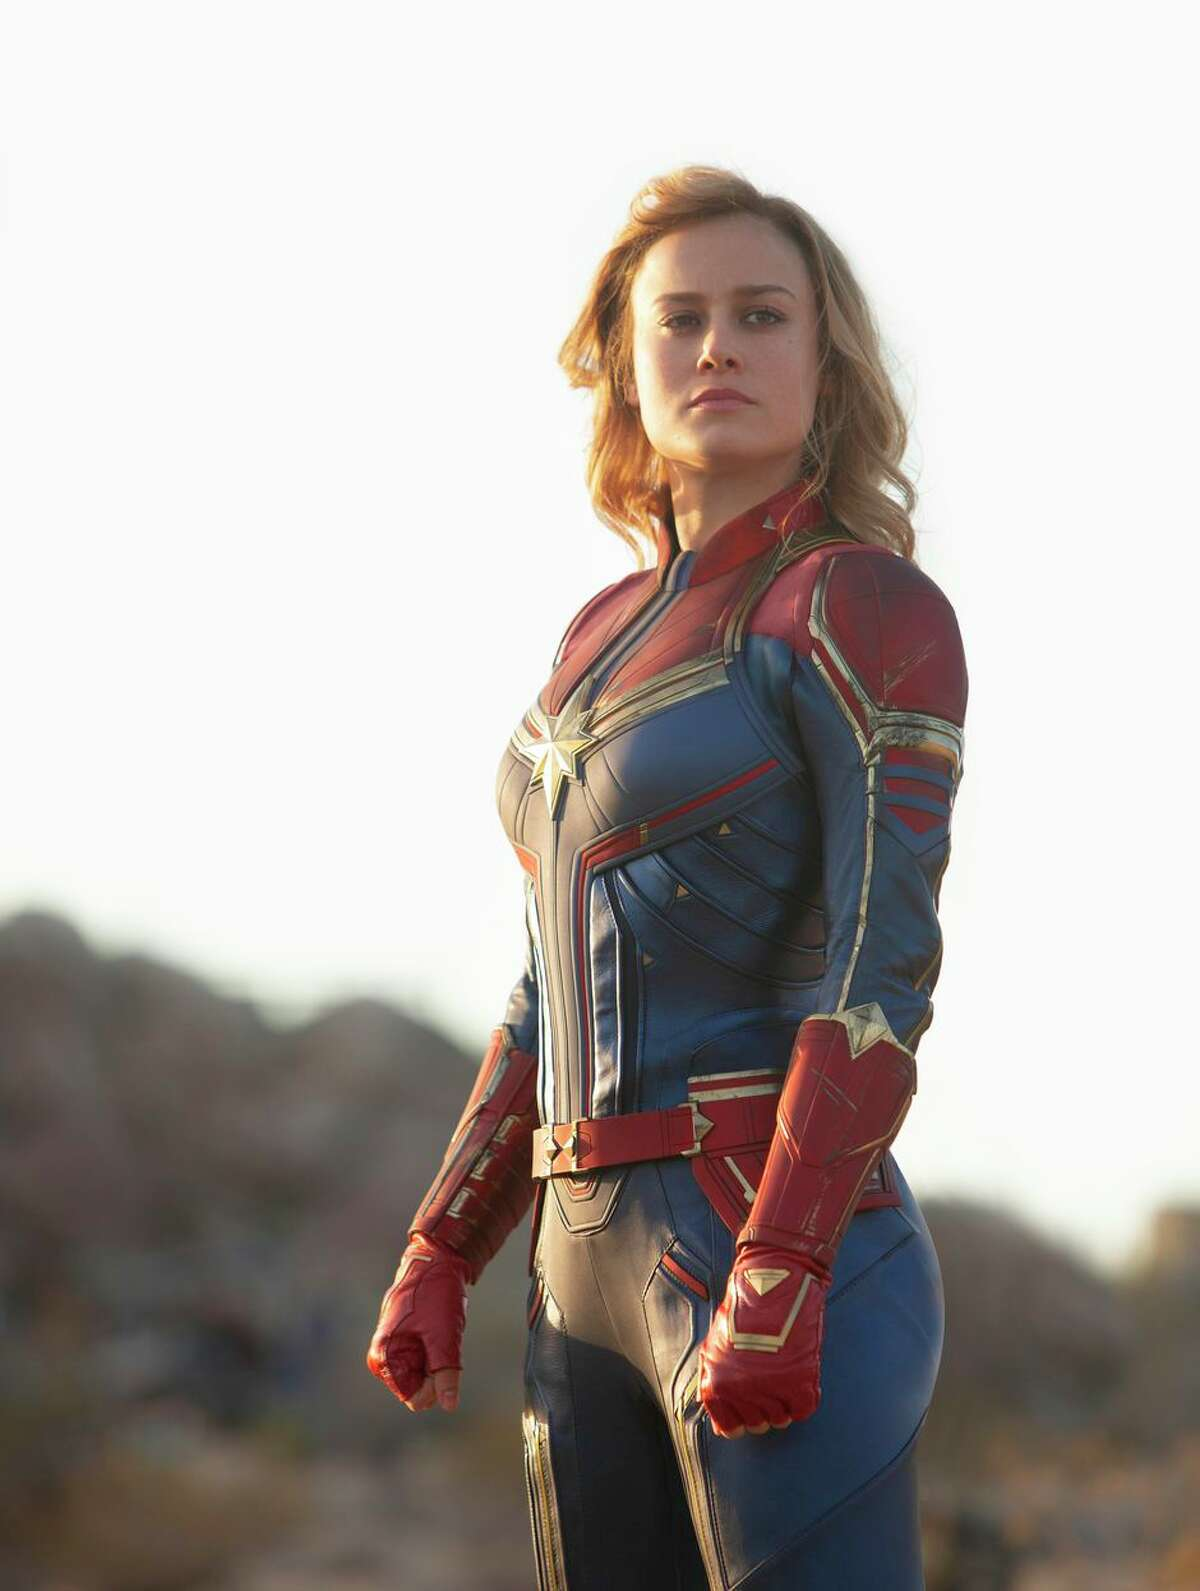 Captain Marvel and Avengers: Endgame were both available to stream on Disney Plus at launch.